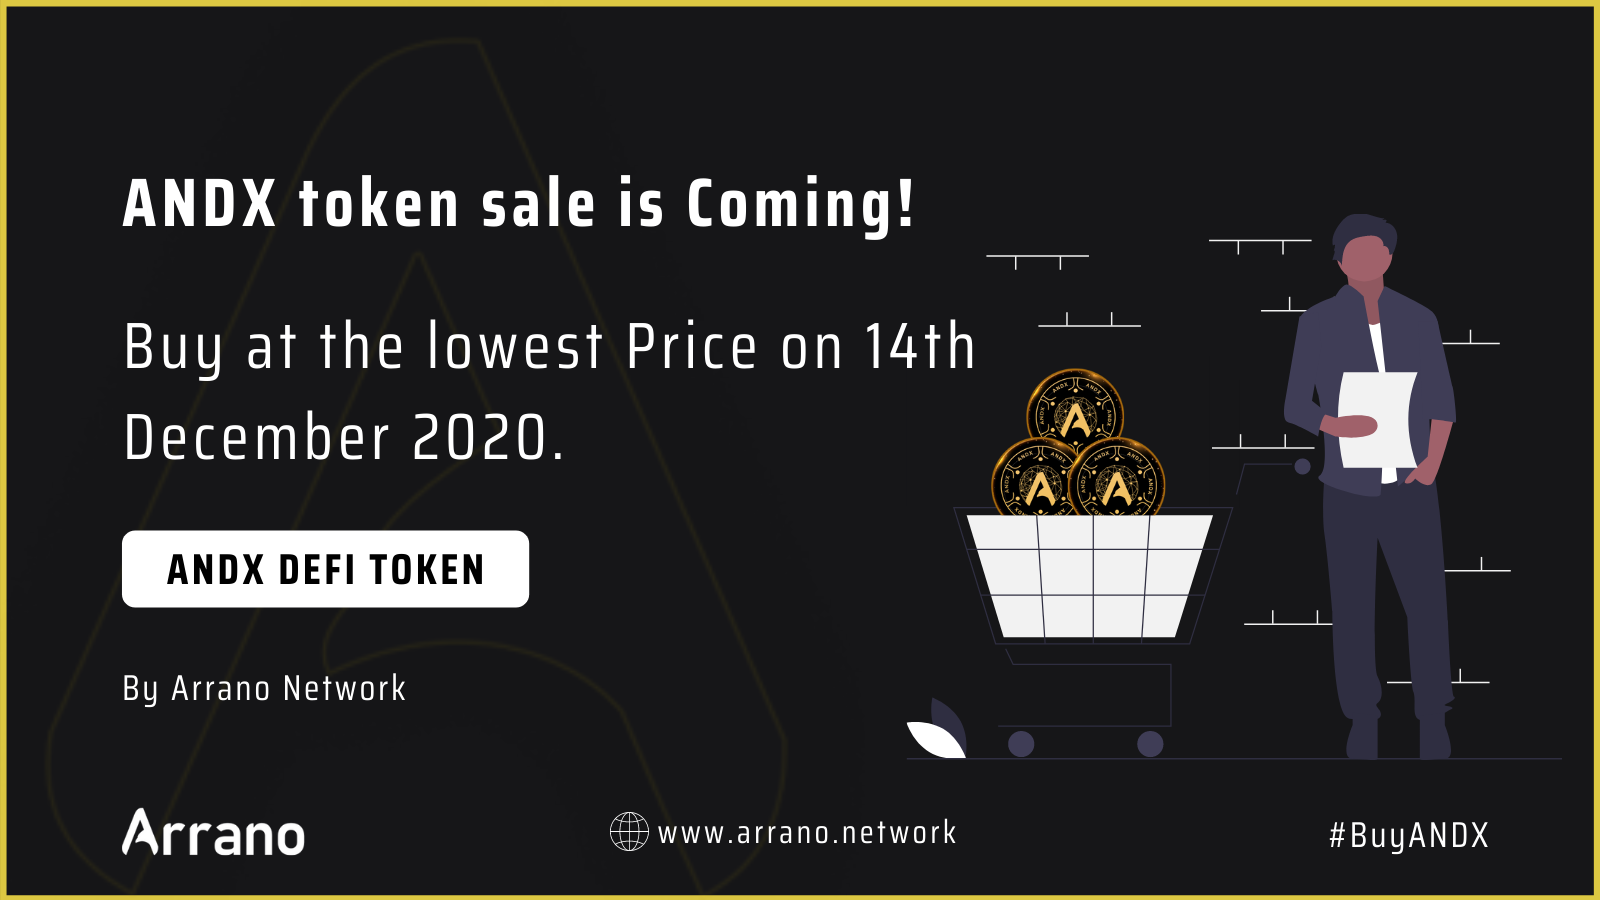 Arrano Network Announces the Pre-Sale of ANDX token, a Defi token with total supply of 81,800 & listed on Uniswap,other DEX.